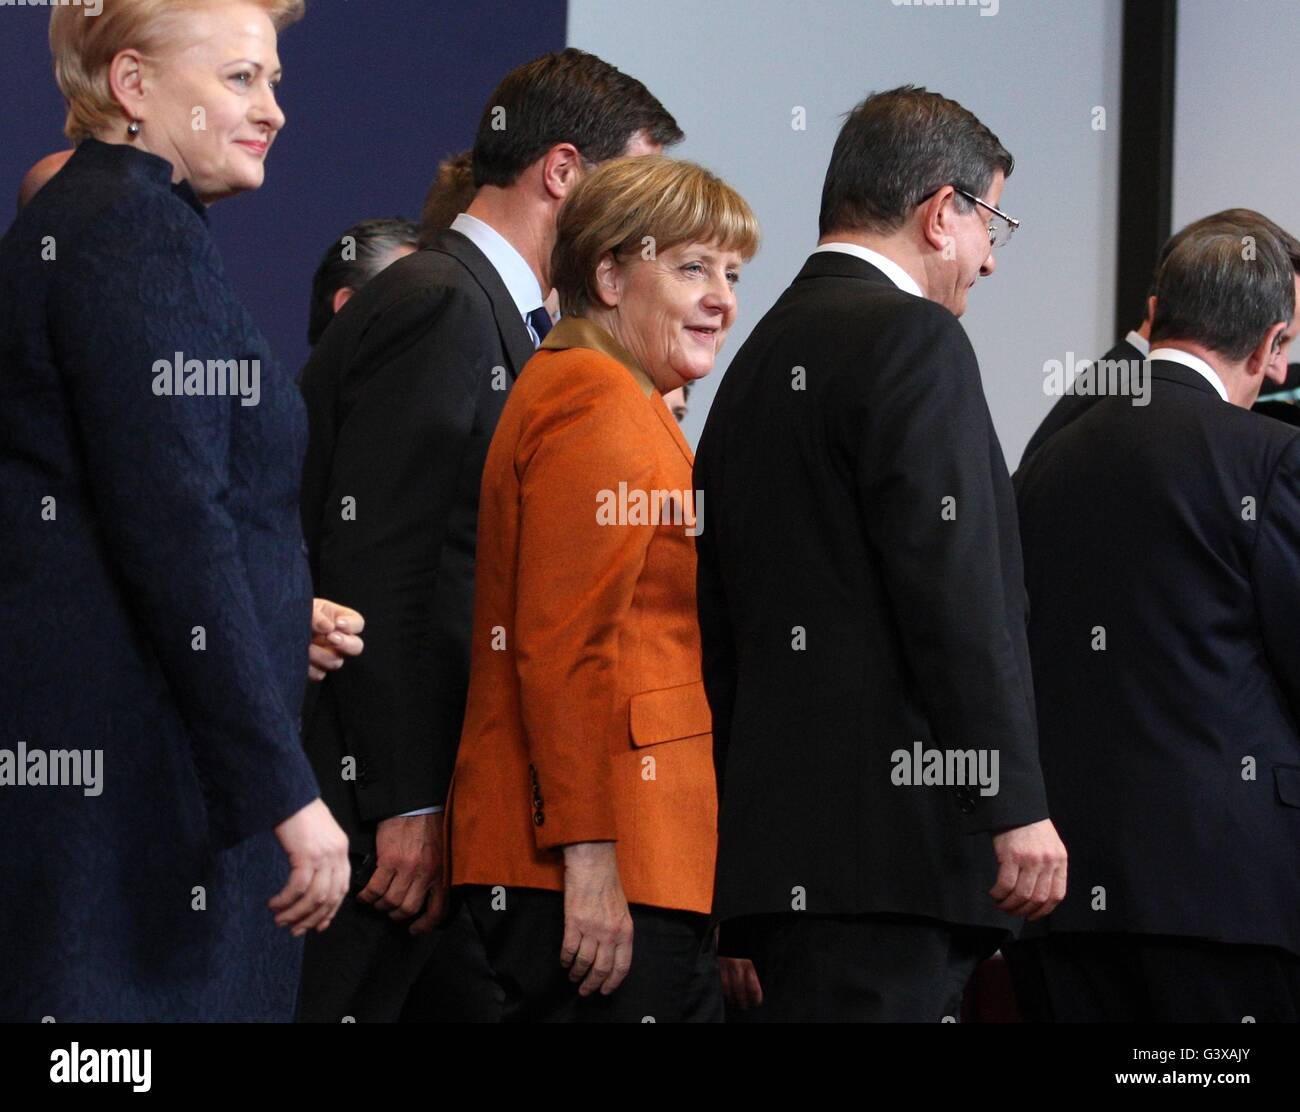 The German Chancellor Angela Merkel talks with the Foreign Minister of Turkey  Ahmet Davutoğlu after the family - Stock Image